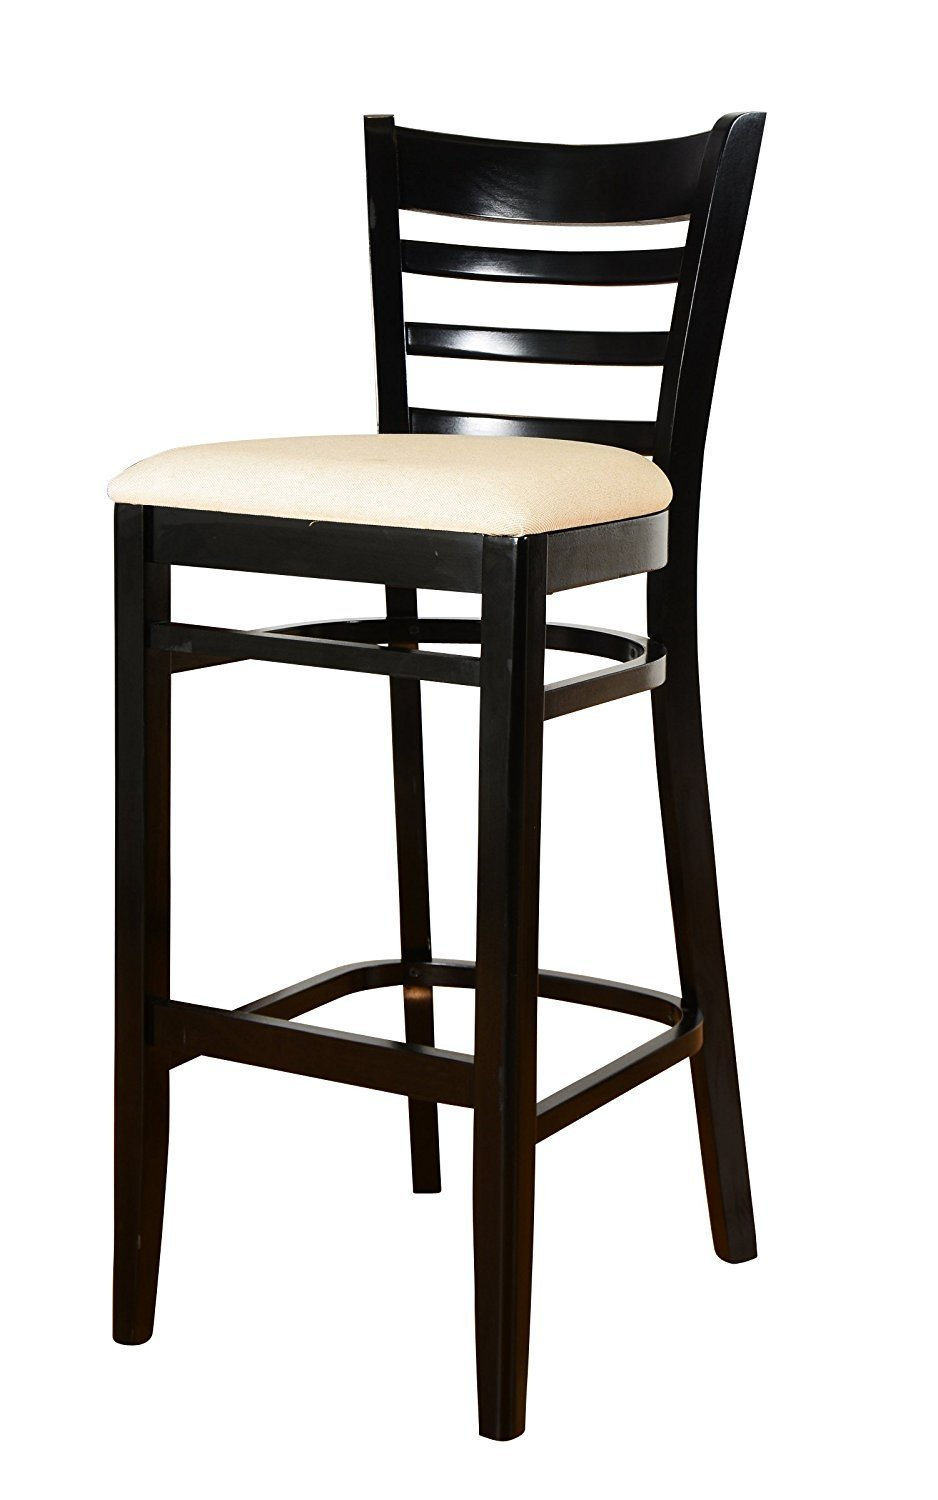 Beechwood Mountain BSD-5B-B Solid Beech Wood Bar Stool in Black for Kitchen and dining by Beechwood Mountain LLC.